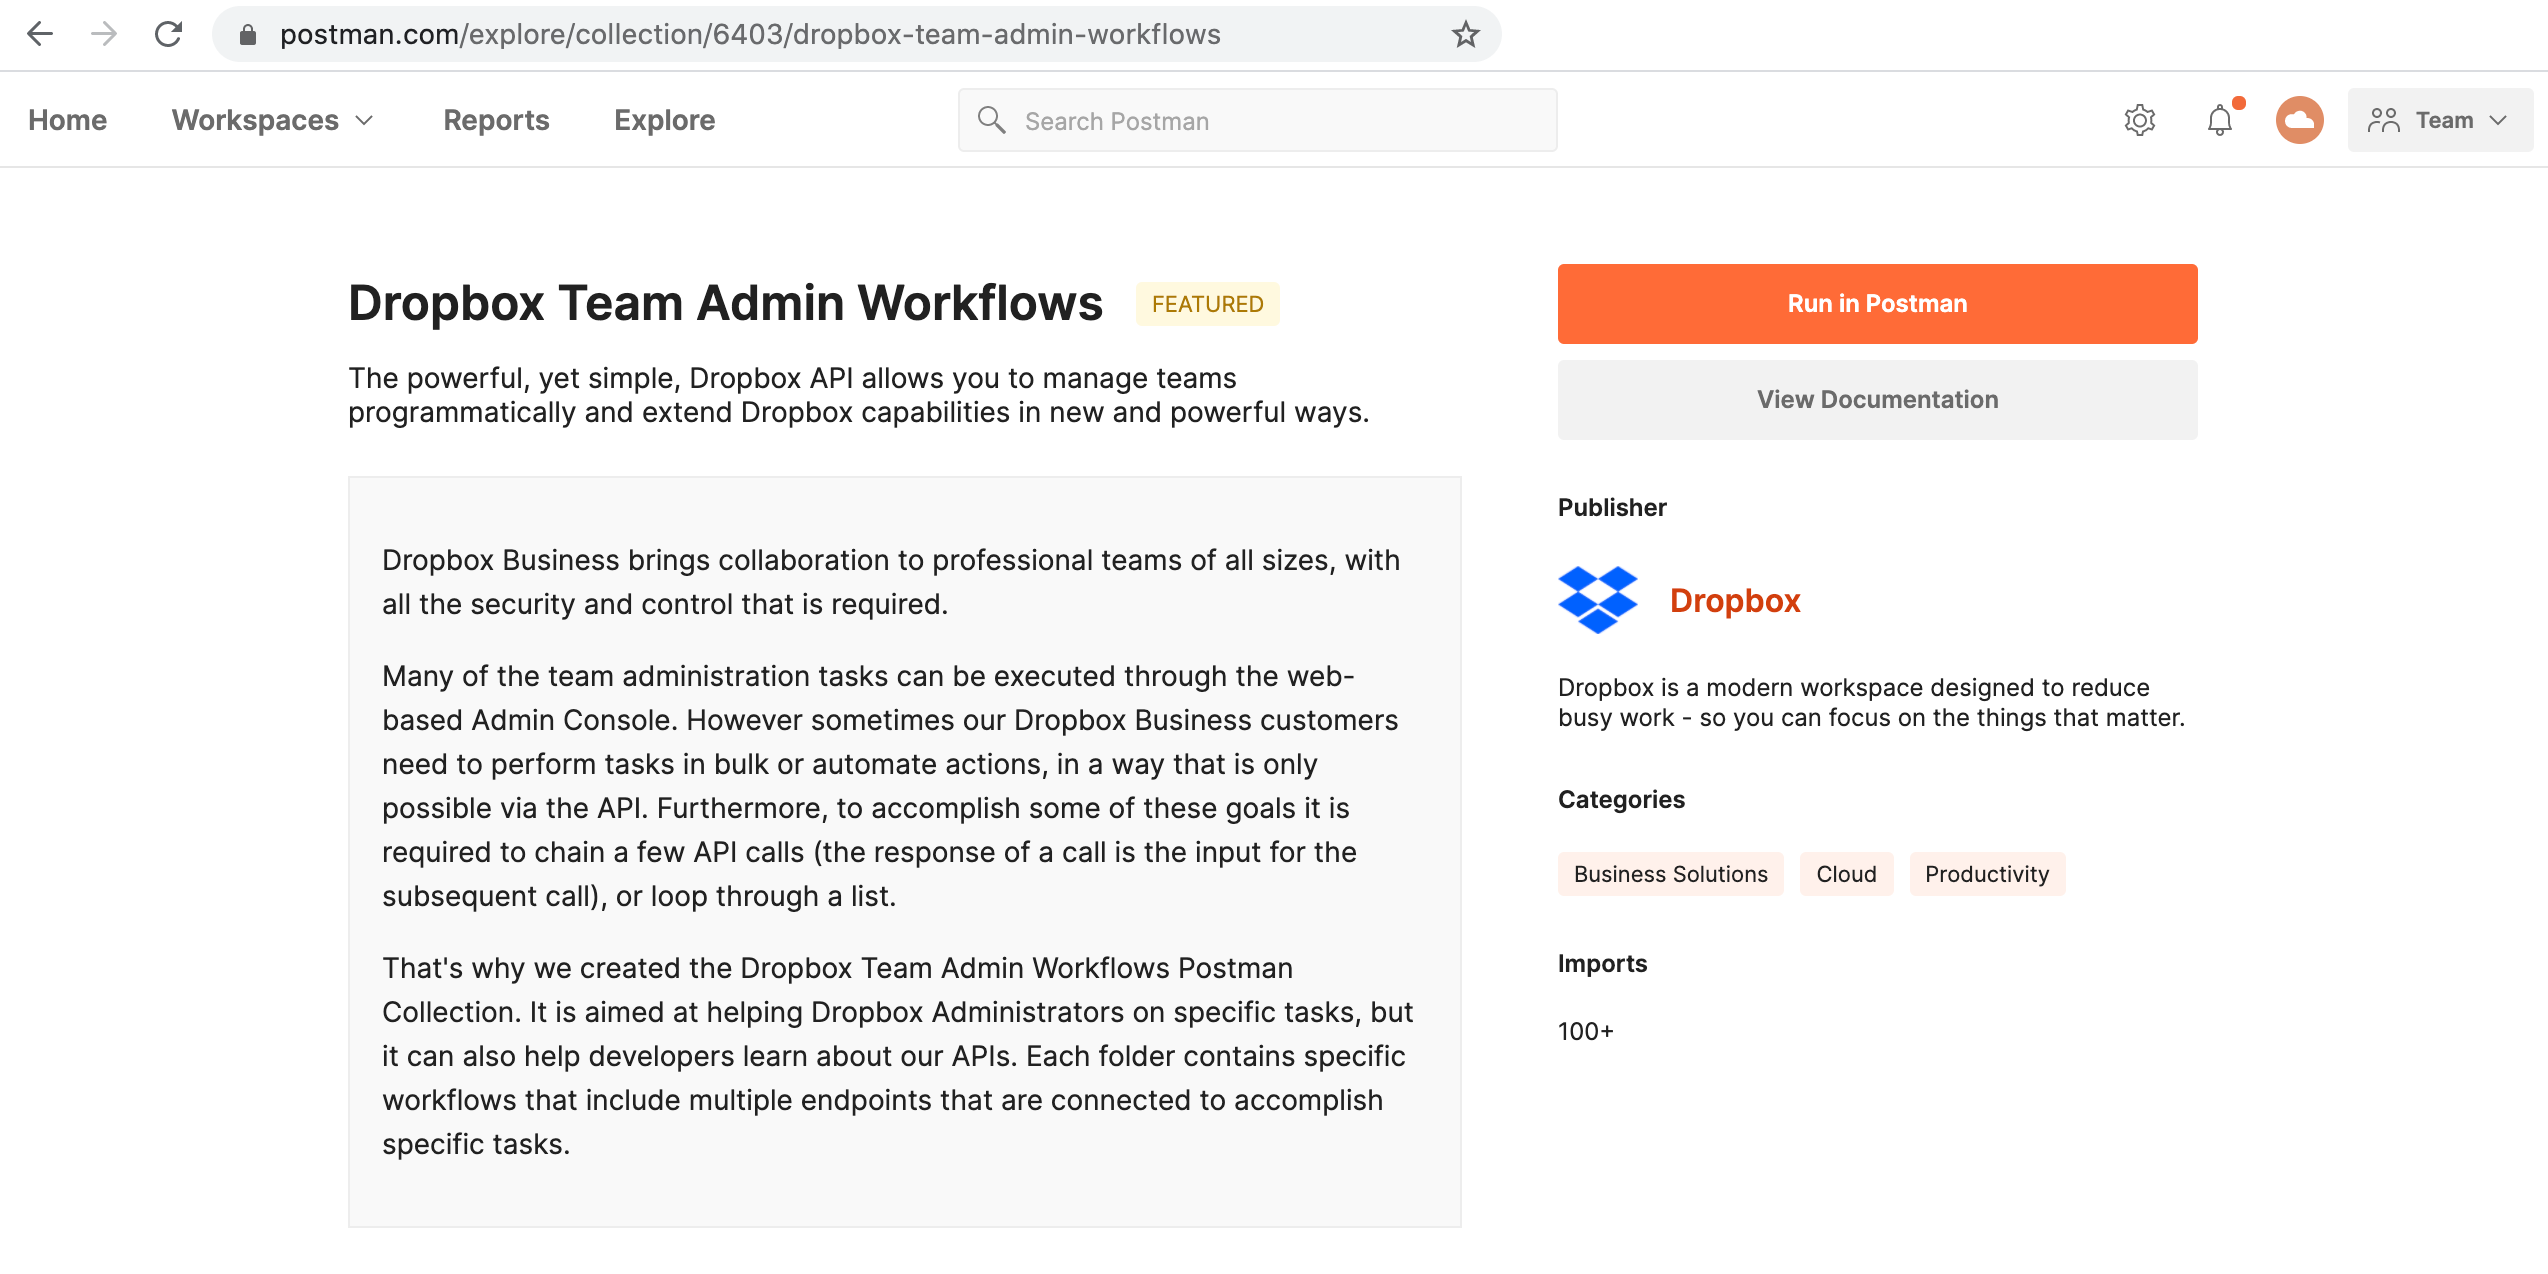 The Dropbox Team Admin Workflows collection in Postman